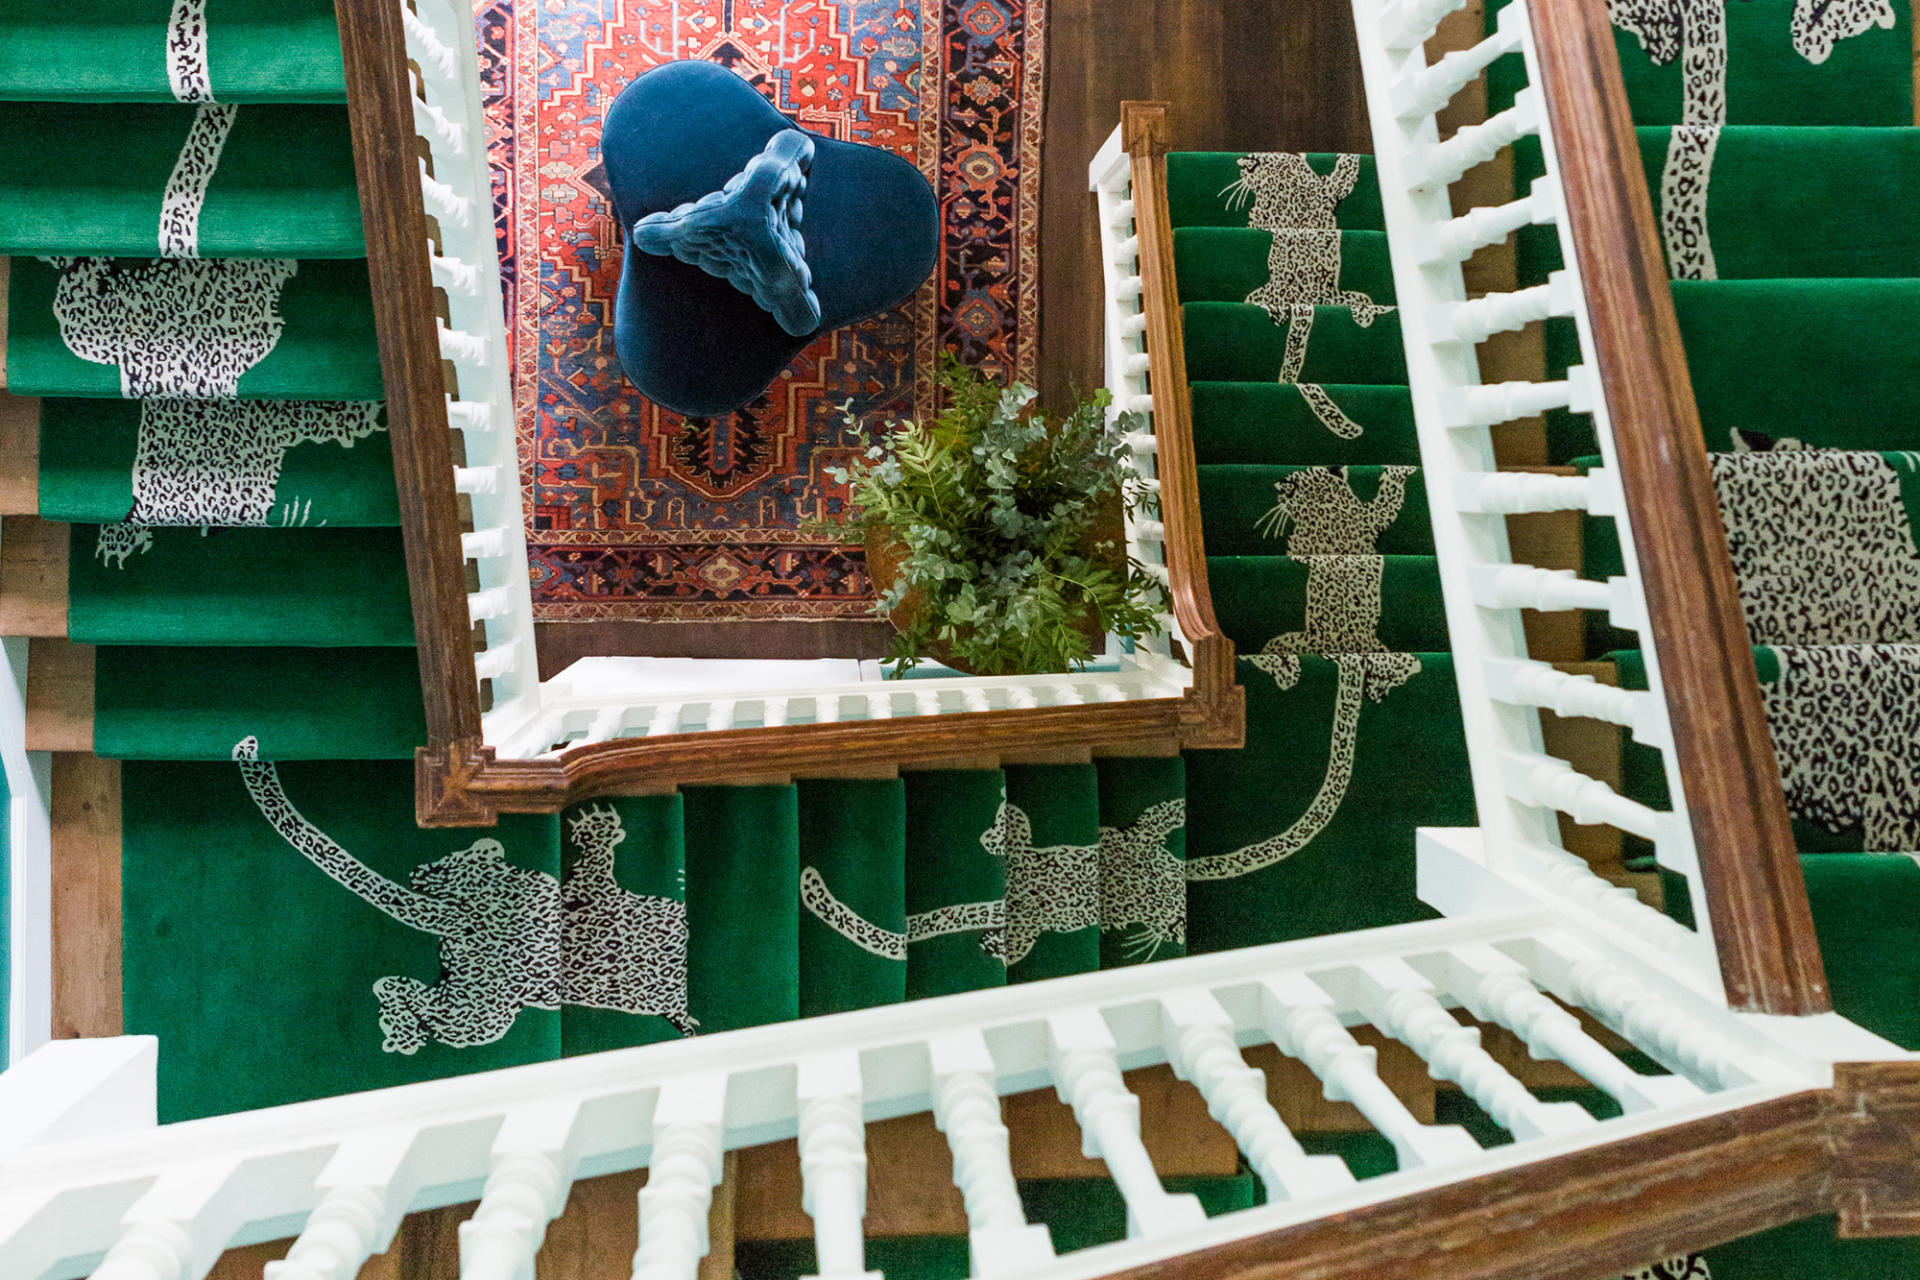 Climbing Leopard runner by DVF for The Rug Company at Samantha Todunter's home